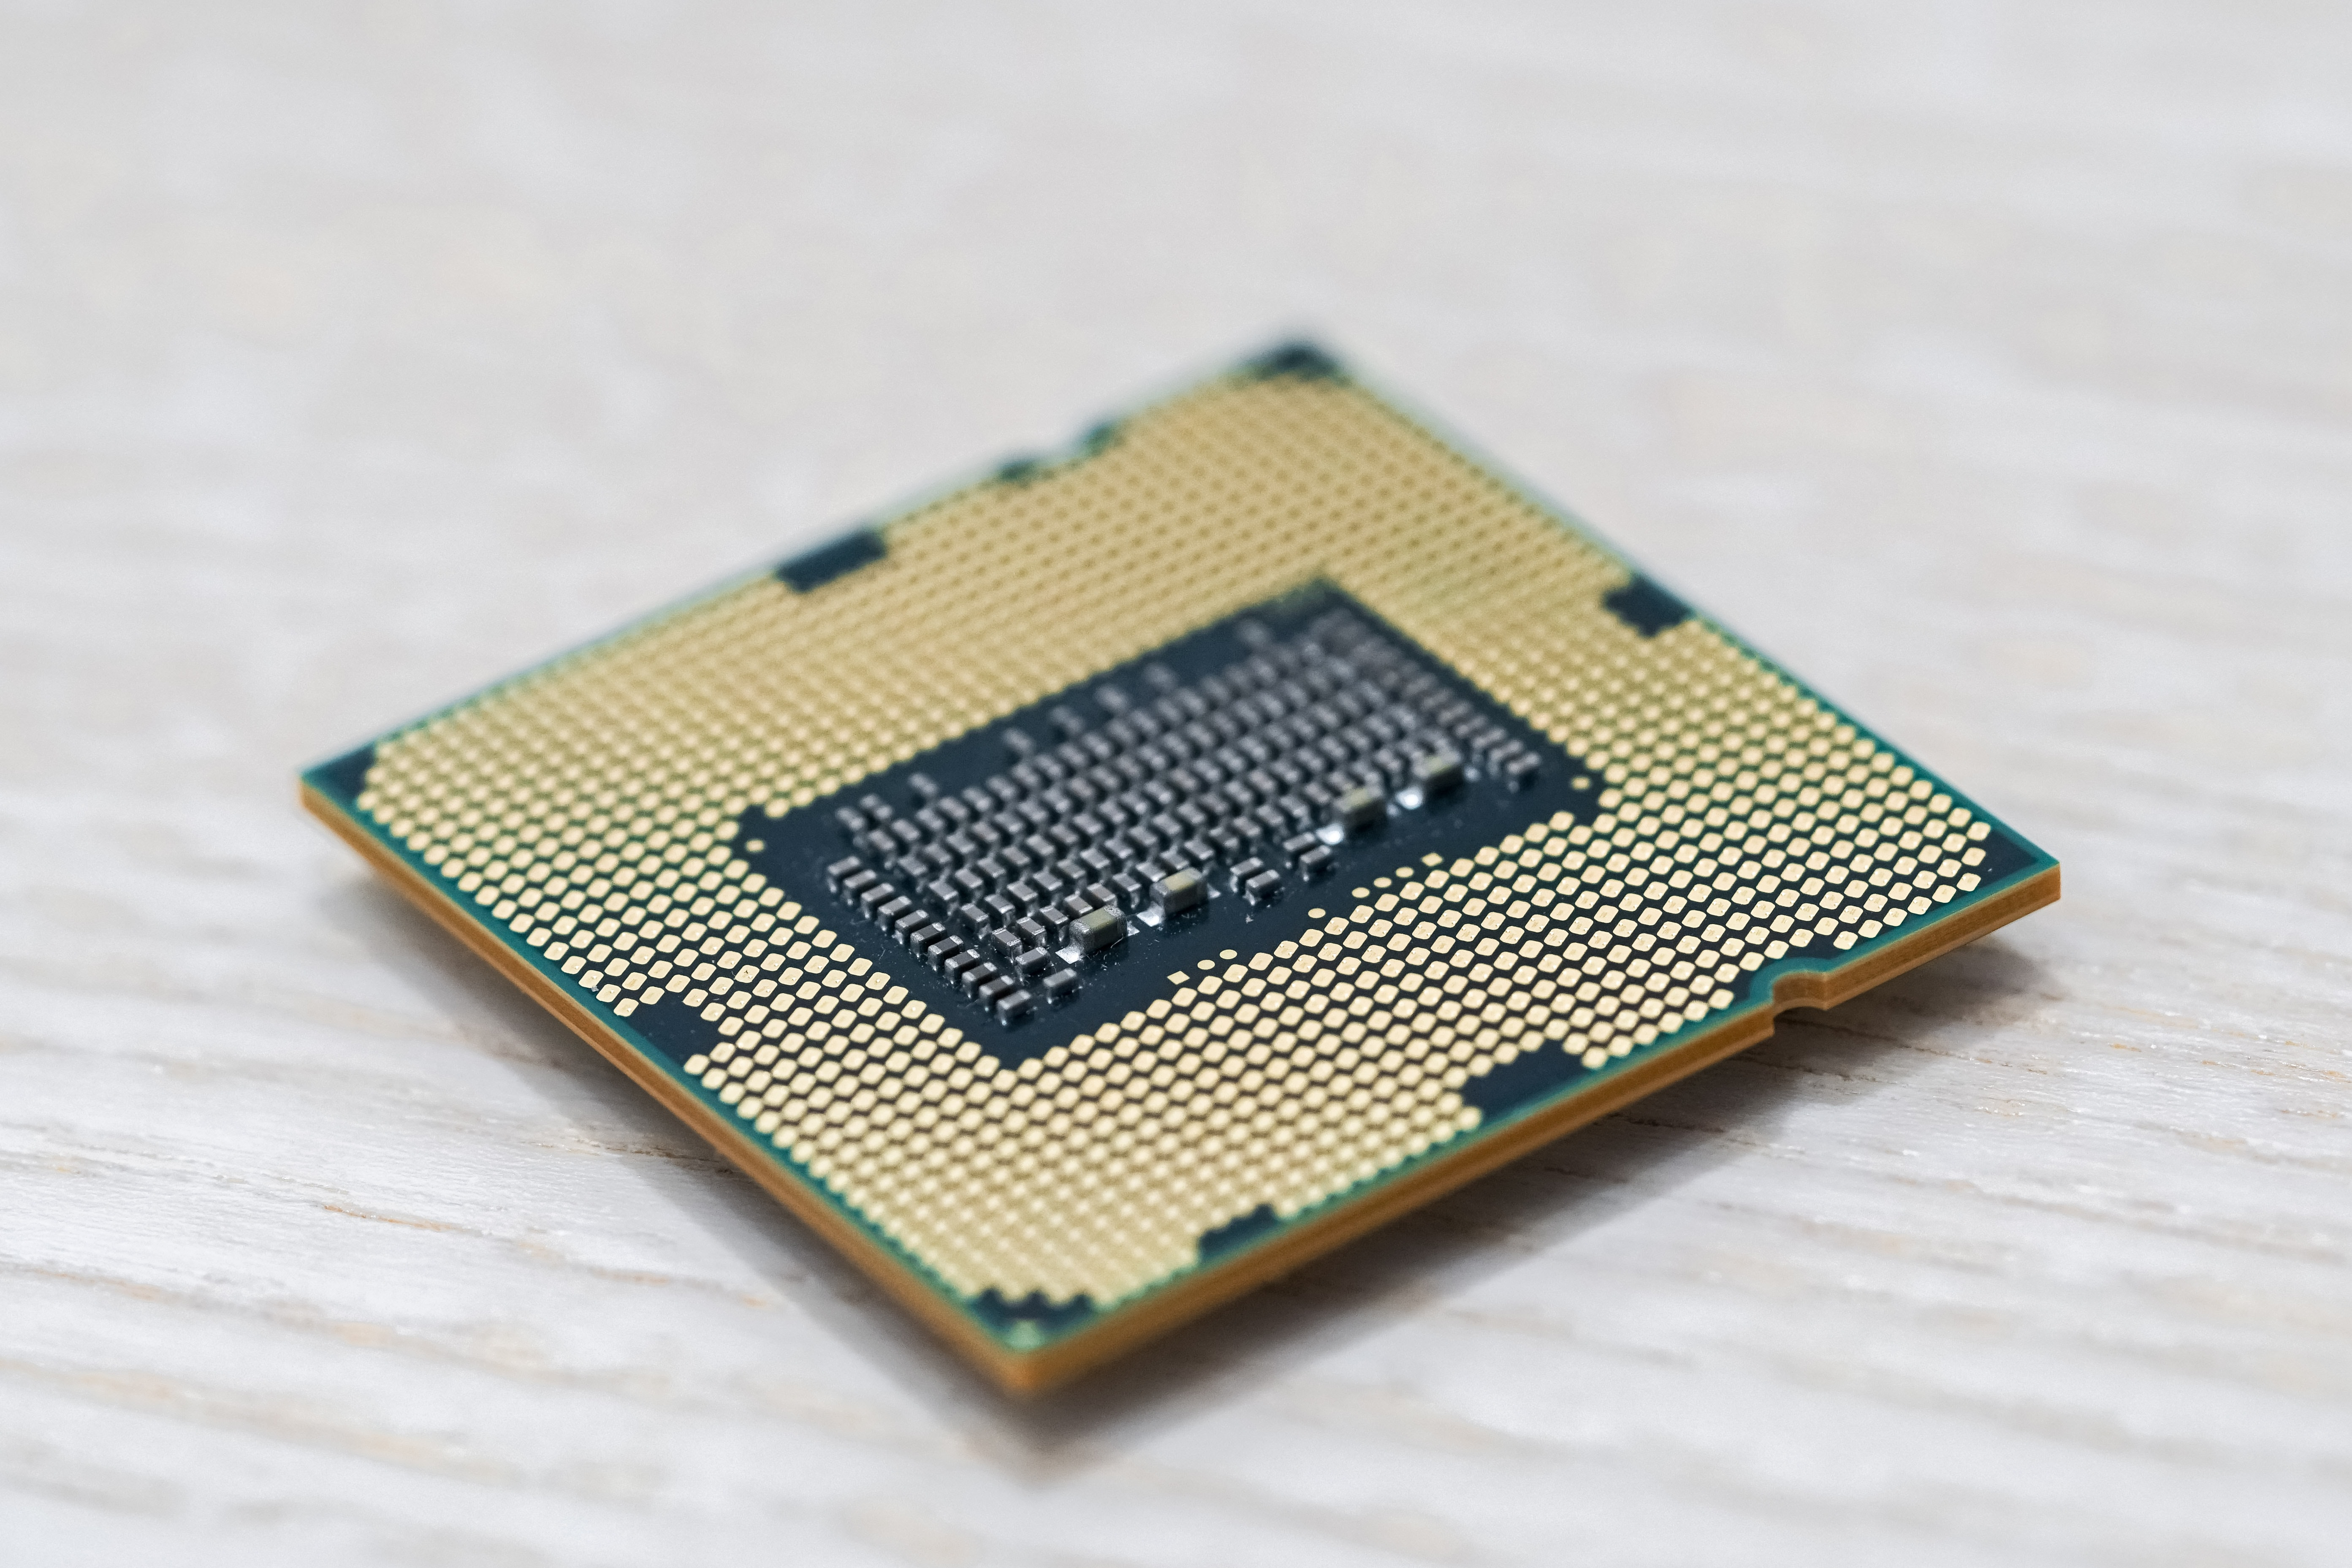 New Company Wants to Offer Special Processors for Big Data